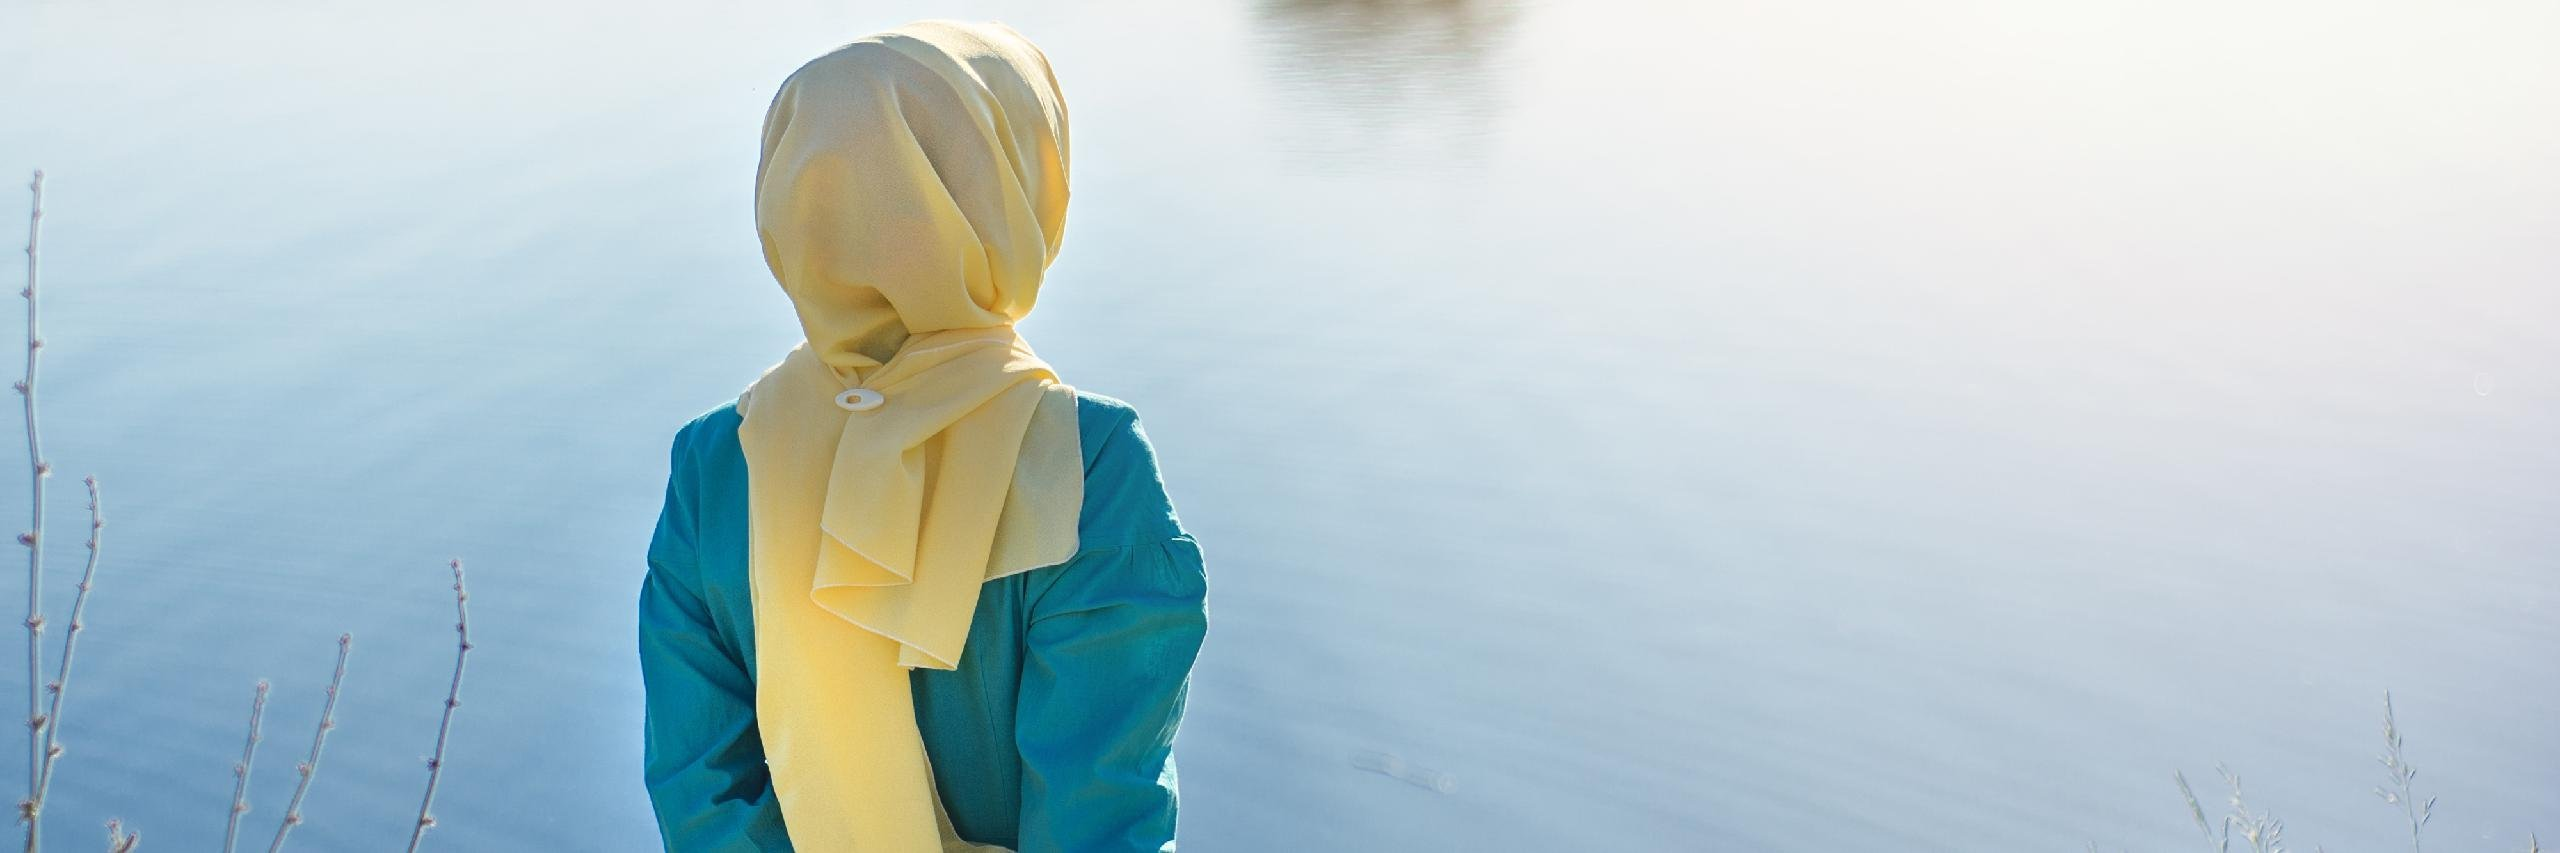 """We Used to Have No Regard for Women"": Gender Equity & the Advent of Islam"